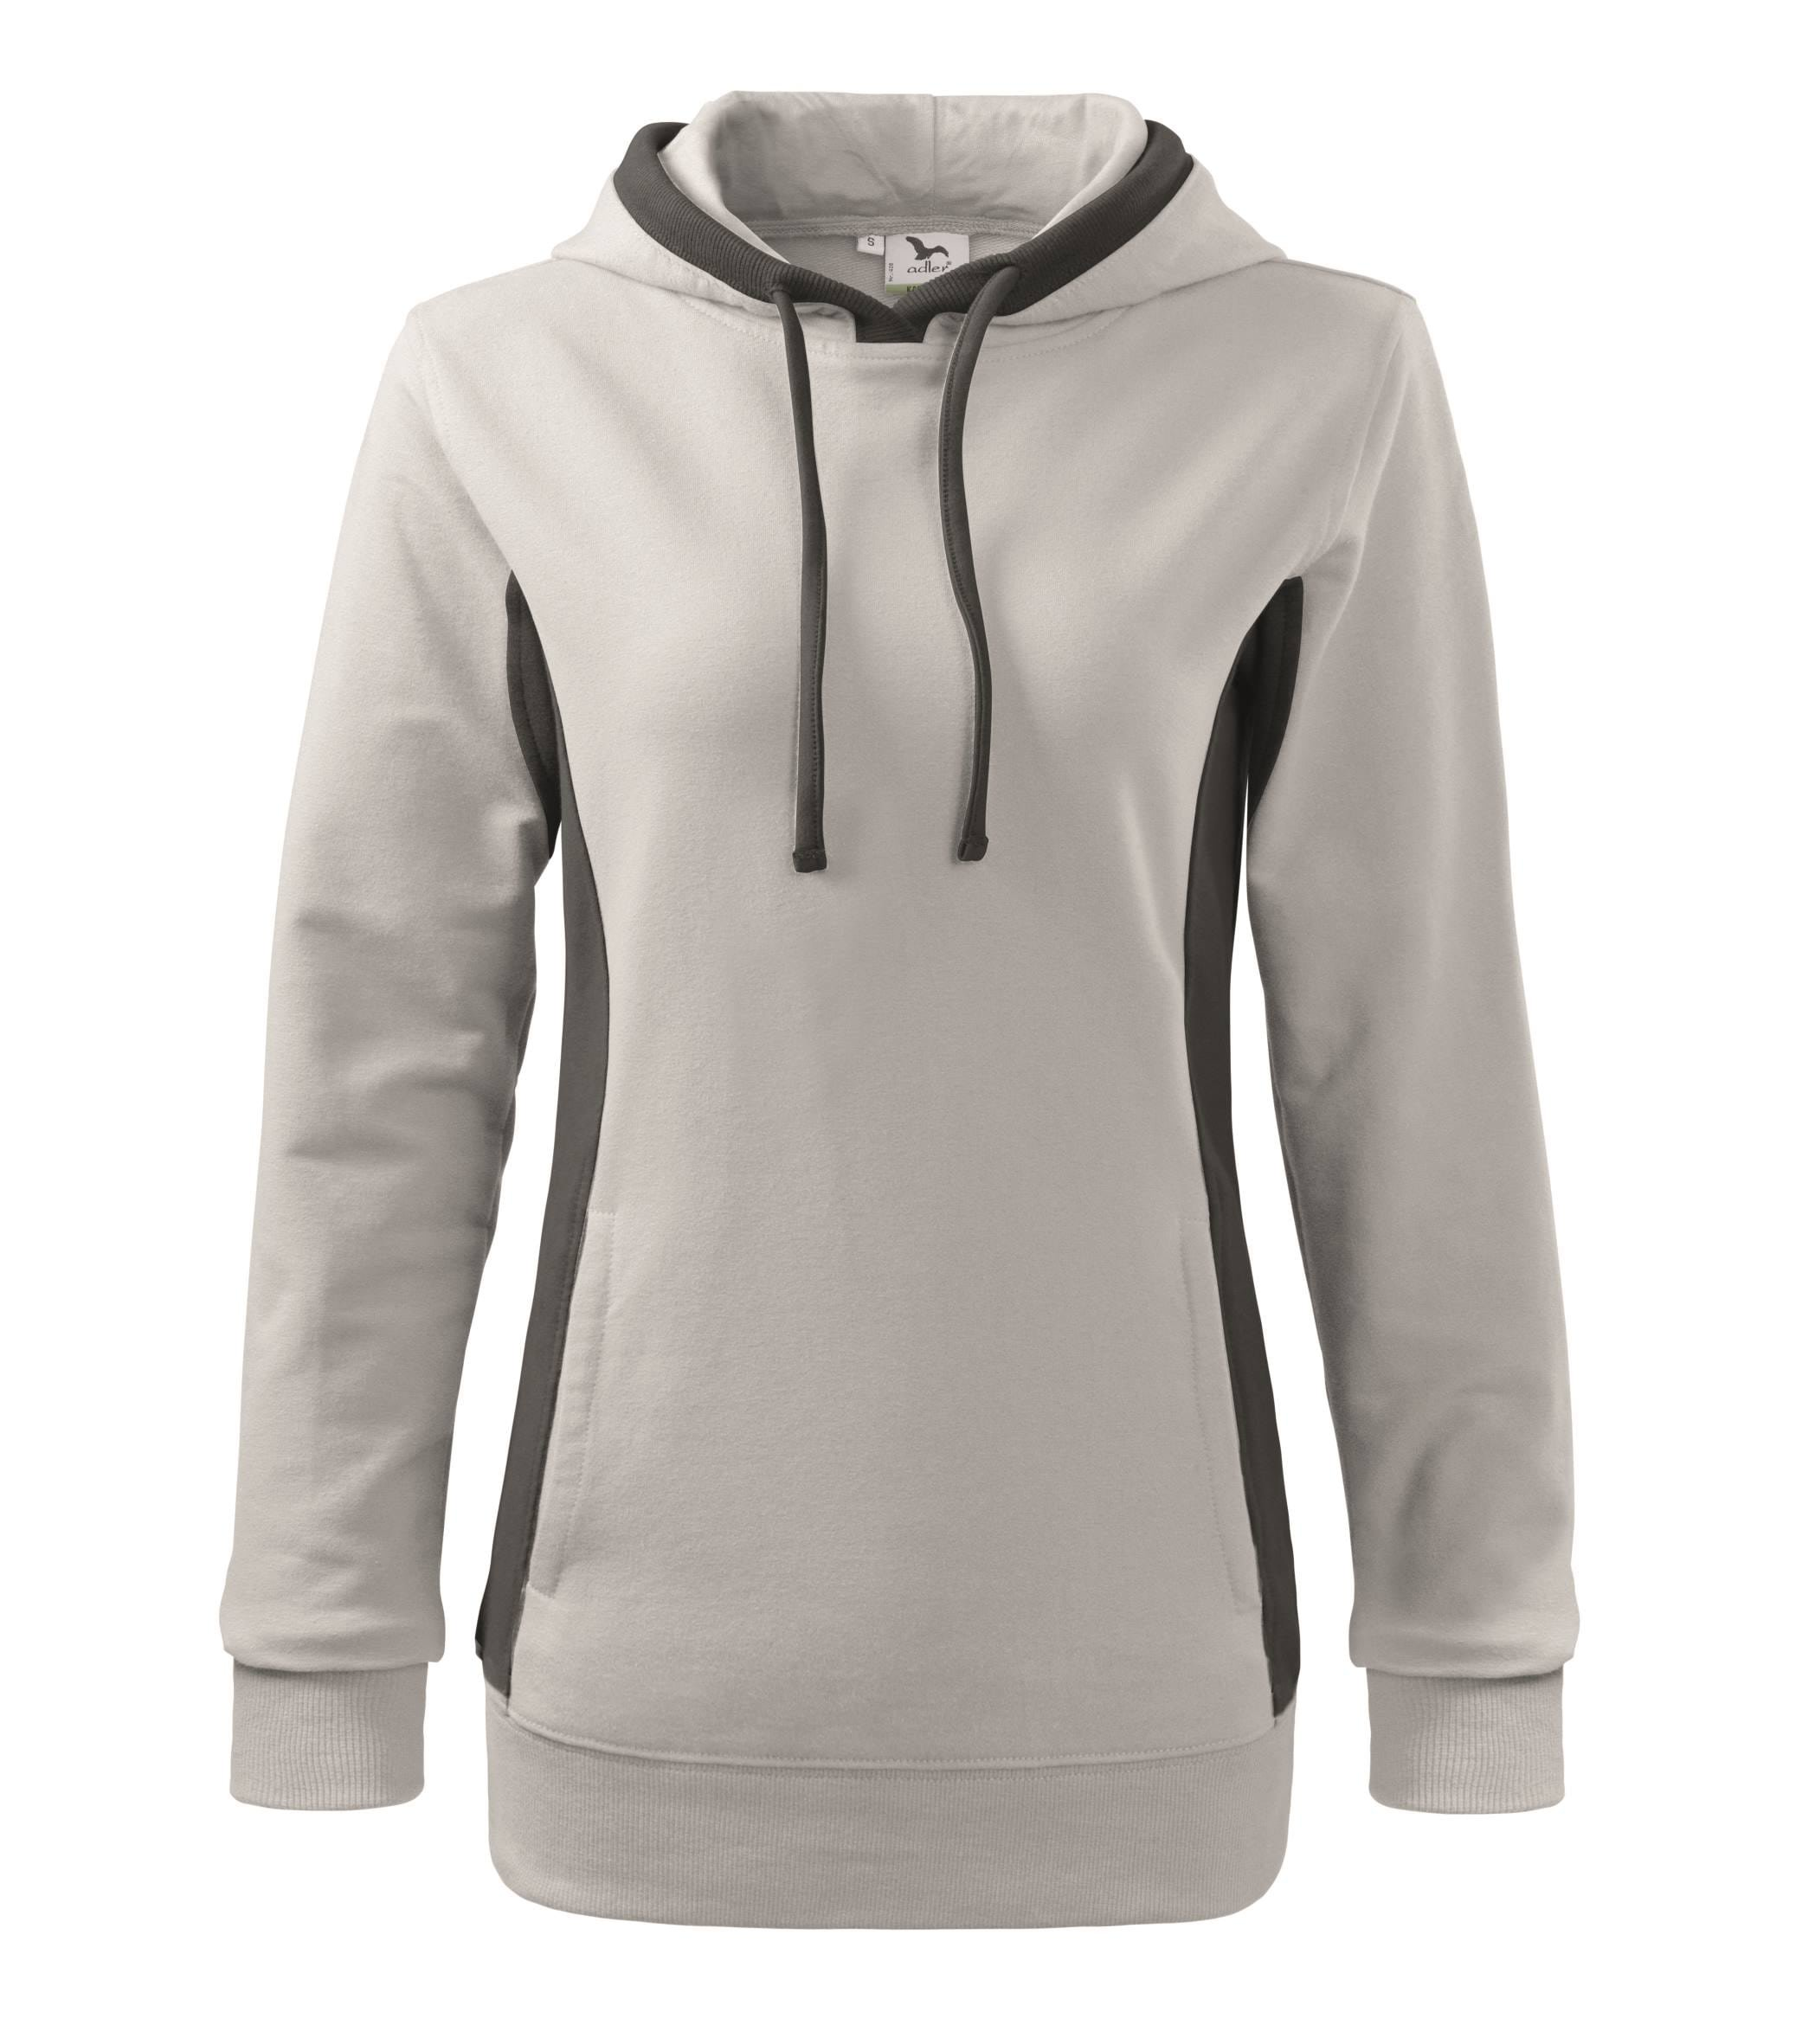 Custom embroidered printed women hooded sweatshirt, white/ black, www.ontimeprint.co.uk